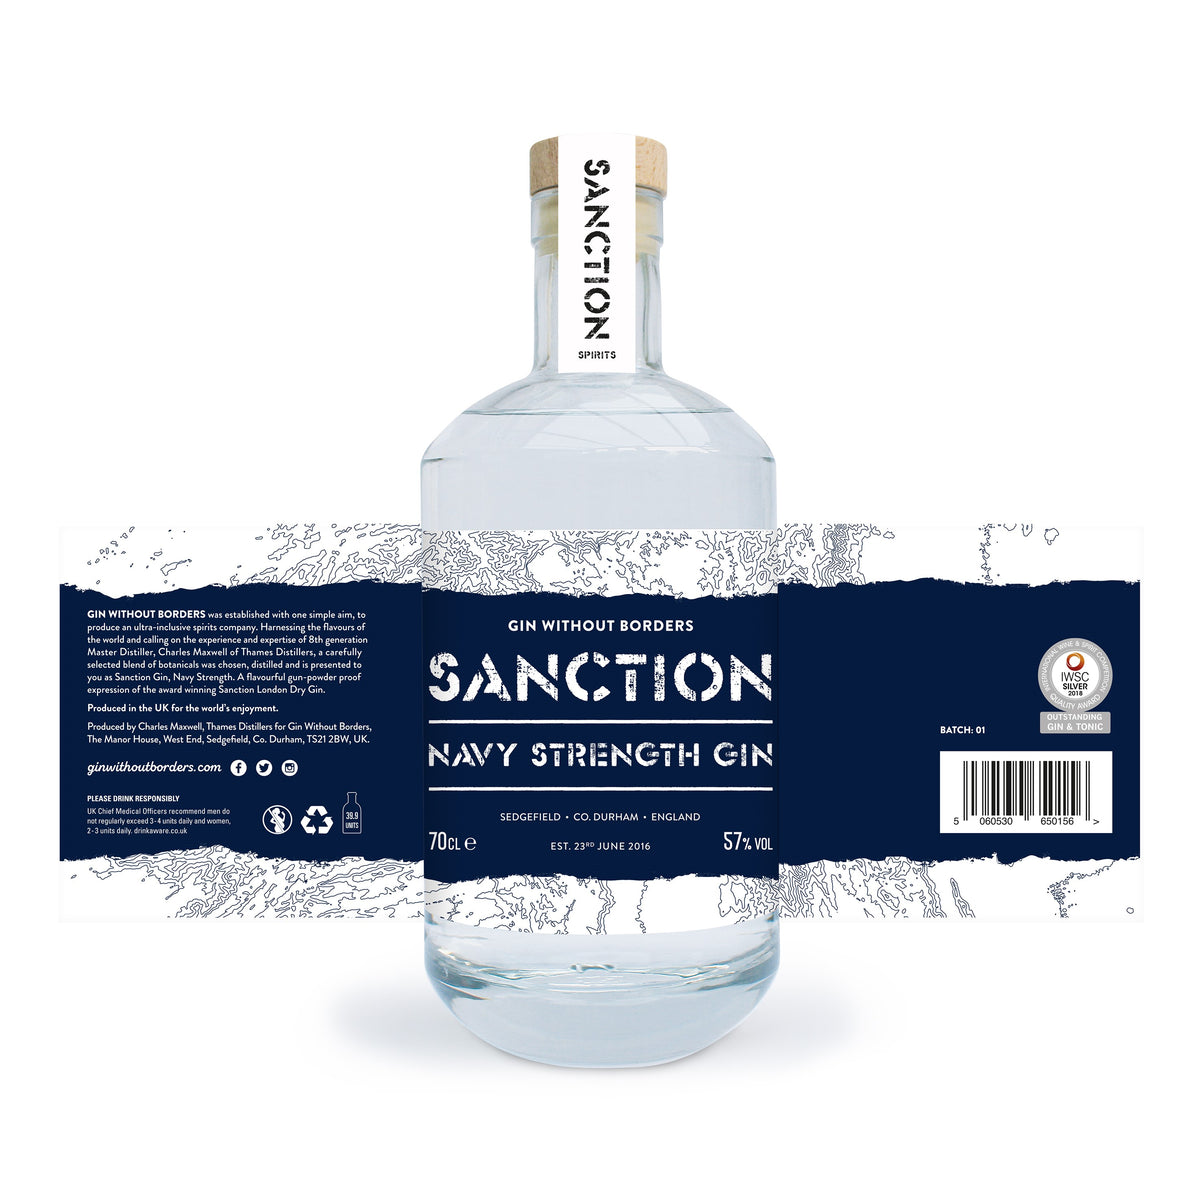 Sanction Gin Navy Strength Gin 70 cl 57% ABV